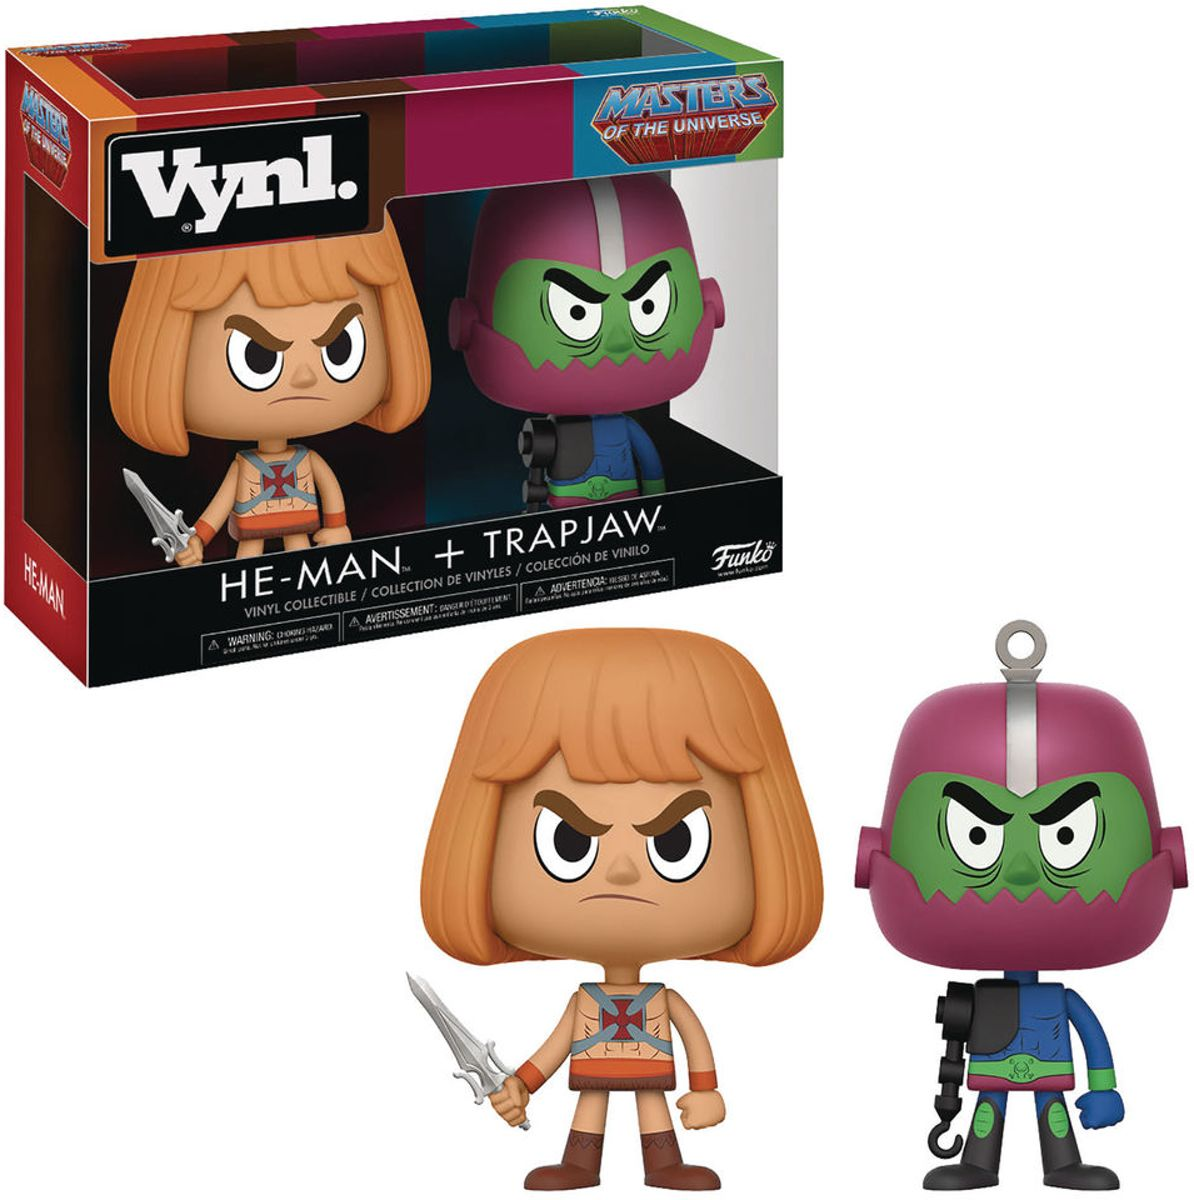 Funko / Vynl - He-Man & Trapjaw (Masters of the Universe) 2-pack